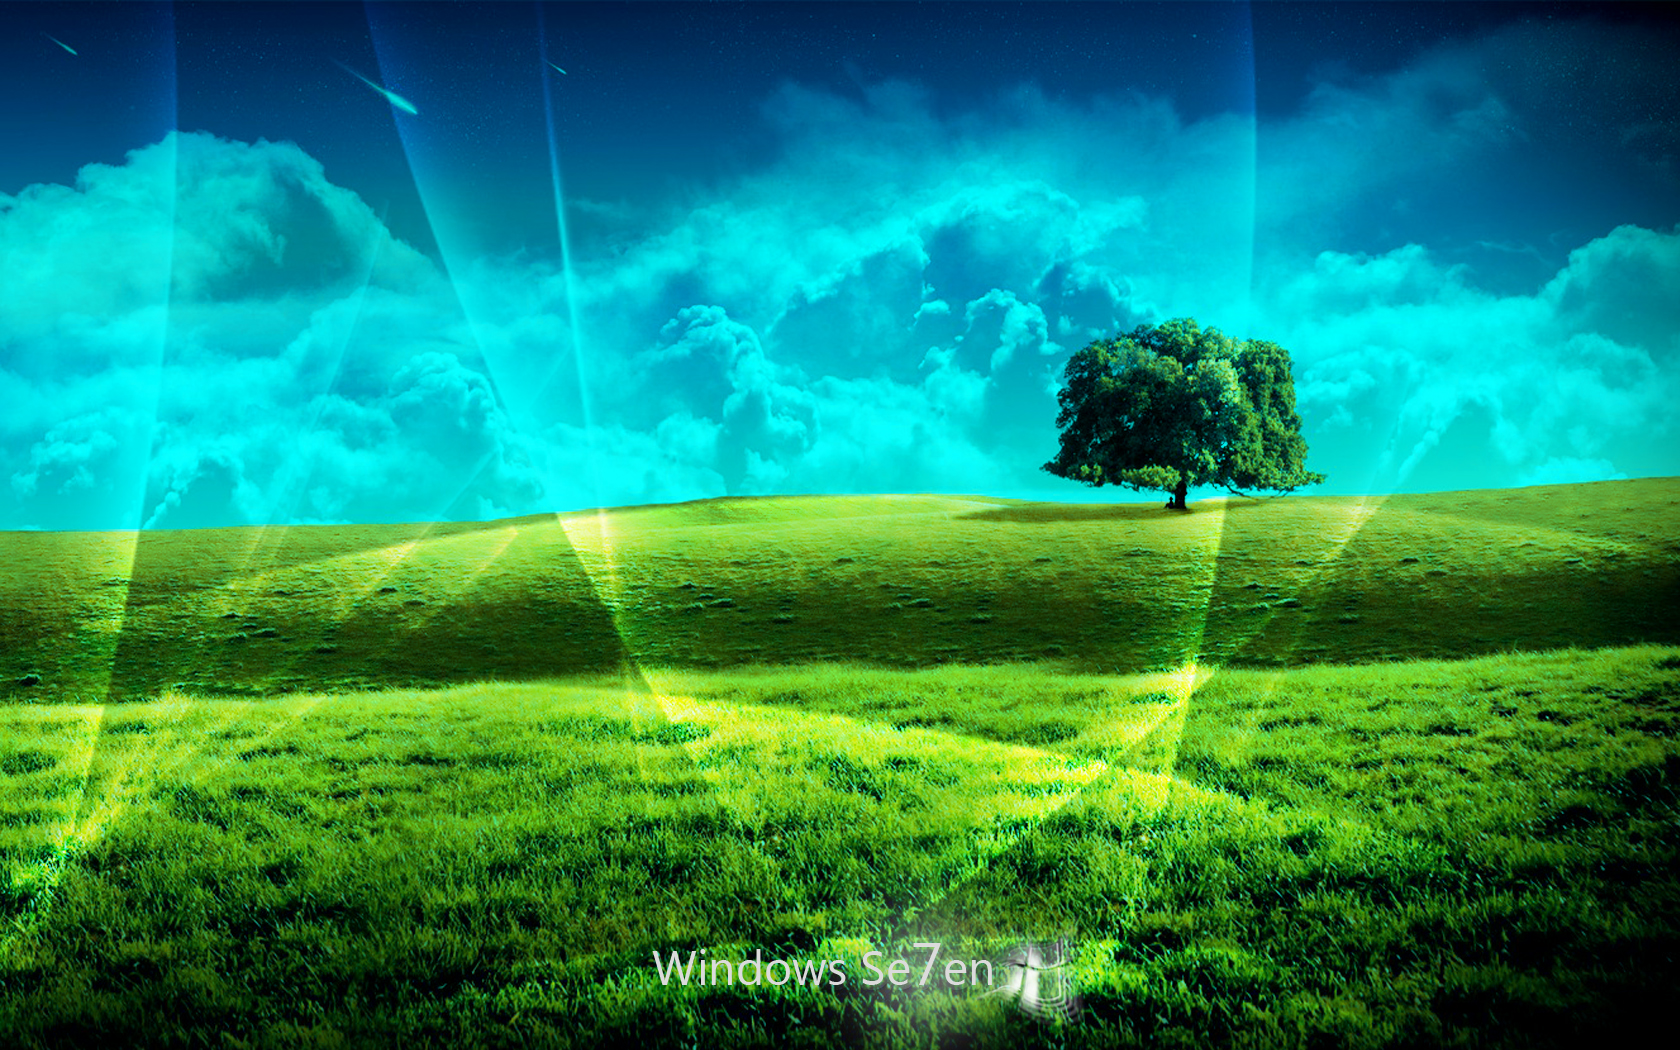 Image Windows 7 Plain Wallpapers And Stock Photos